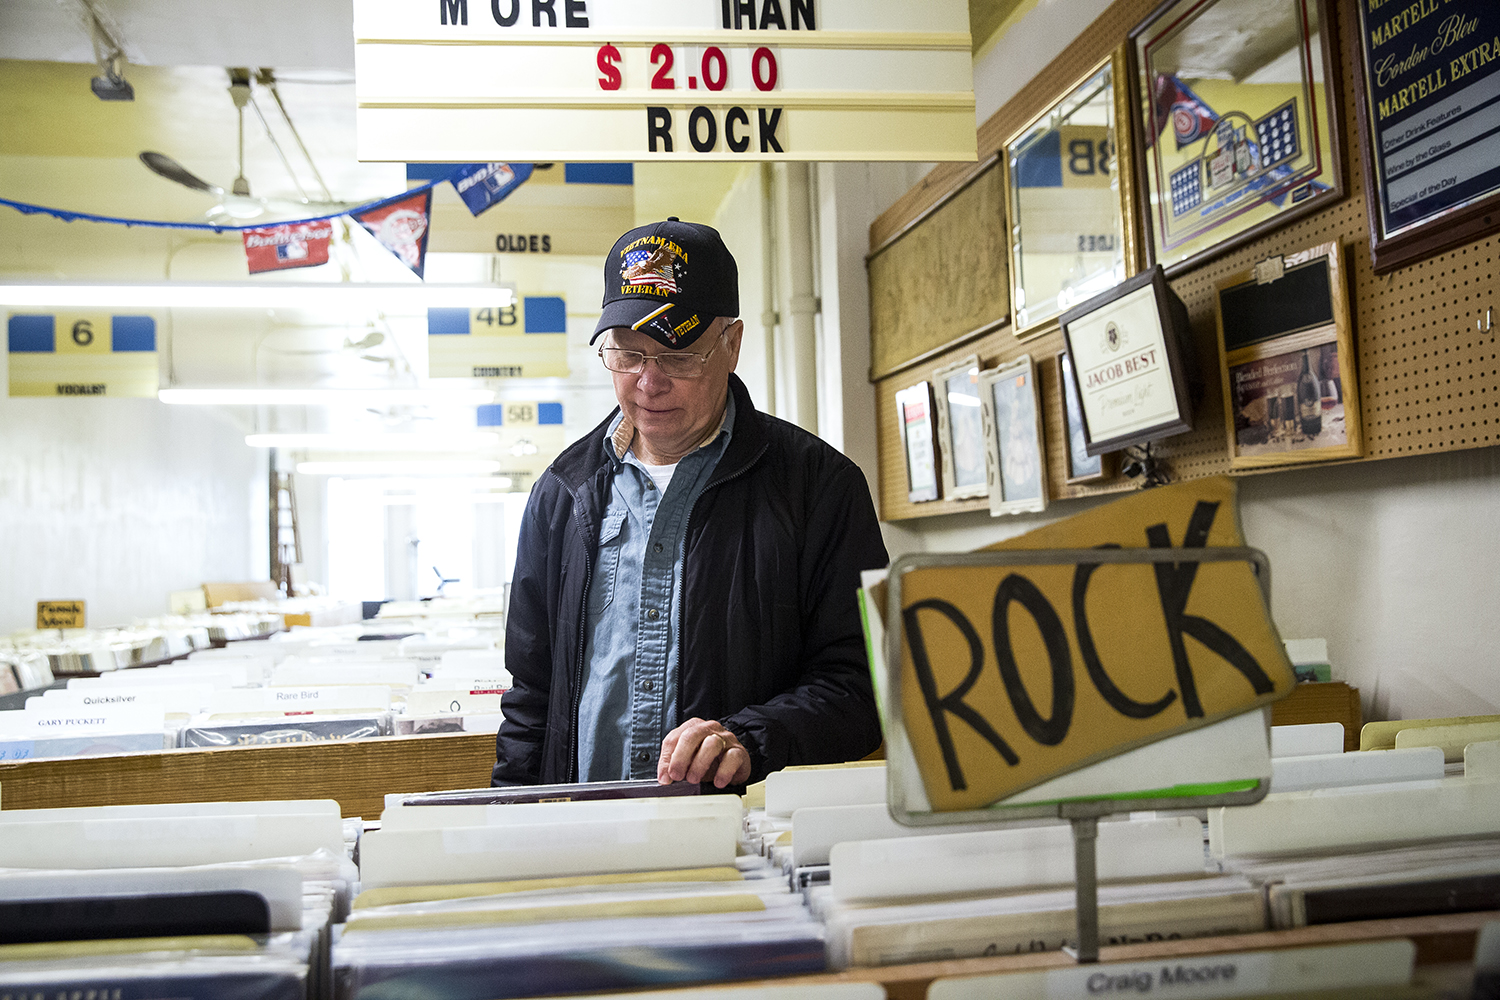 Jerry Cross began buying albums at Recycled Records when it was still Springfield Furniture, which was owned by Mark and Gary Kessler's parents. The brothers began selling used record albums there in 1978. Cross, who is from Jacksonville, says he used to take his teenage sons there to shop for music. [Rich Saal/The State Journal-Register]